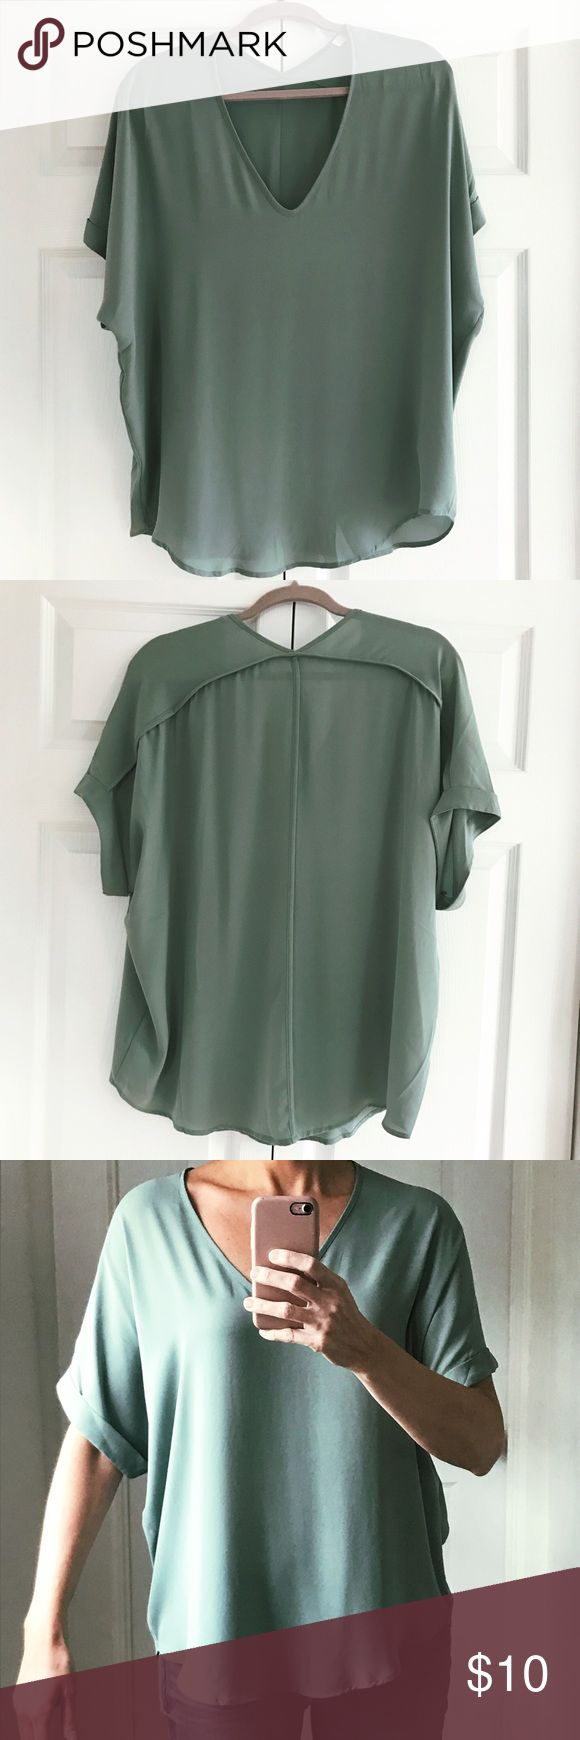 "Short sleeve blouse Lightweight, short sleeve green blouse by Lush. Size Large. Rounded/curved hem. Flowy fabric is comfortable and camouflages the tummy, muffin top and/or hips. Worn one time; in perfect condition. Color is a light sage green. Will fit L/XL. For reference, I'm 5'8"", 143 lbs and usually wear a 6/M. Lush Tops Blouses"